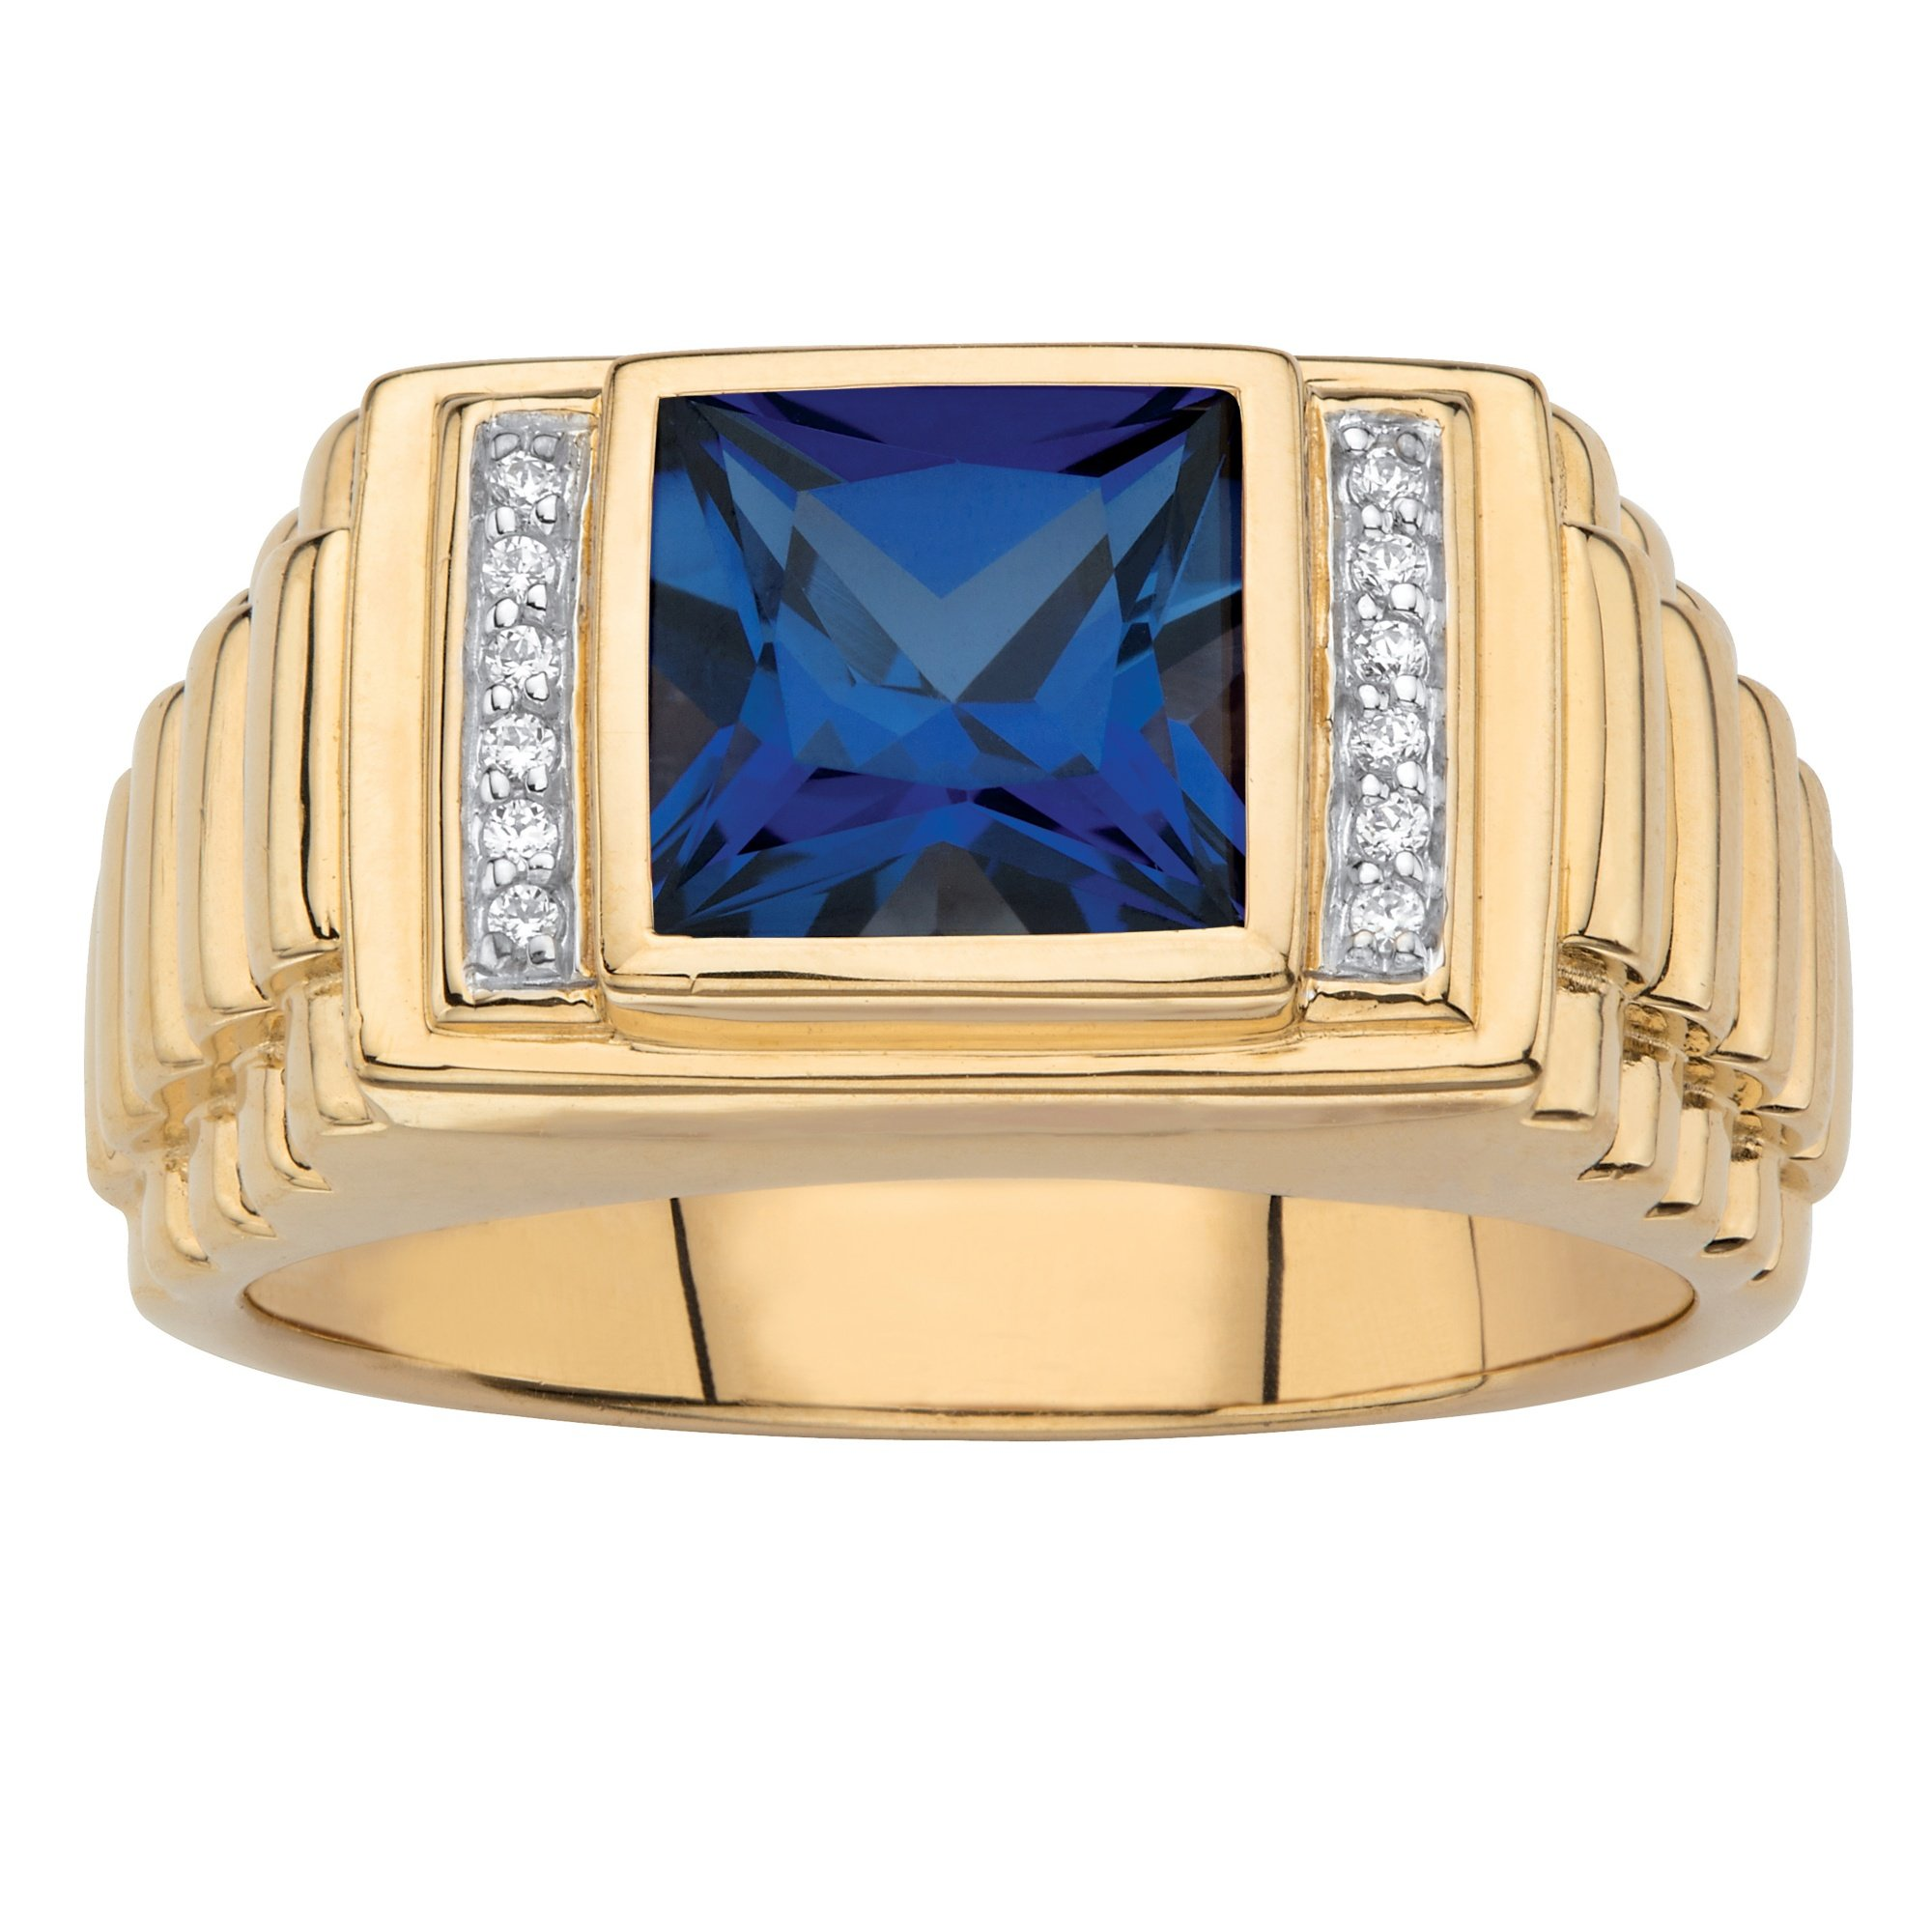 Men's 18K Gold over Sterling Silver Simulated Blue Sapphire and Diamond Accent Ring Size 12